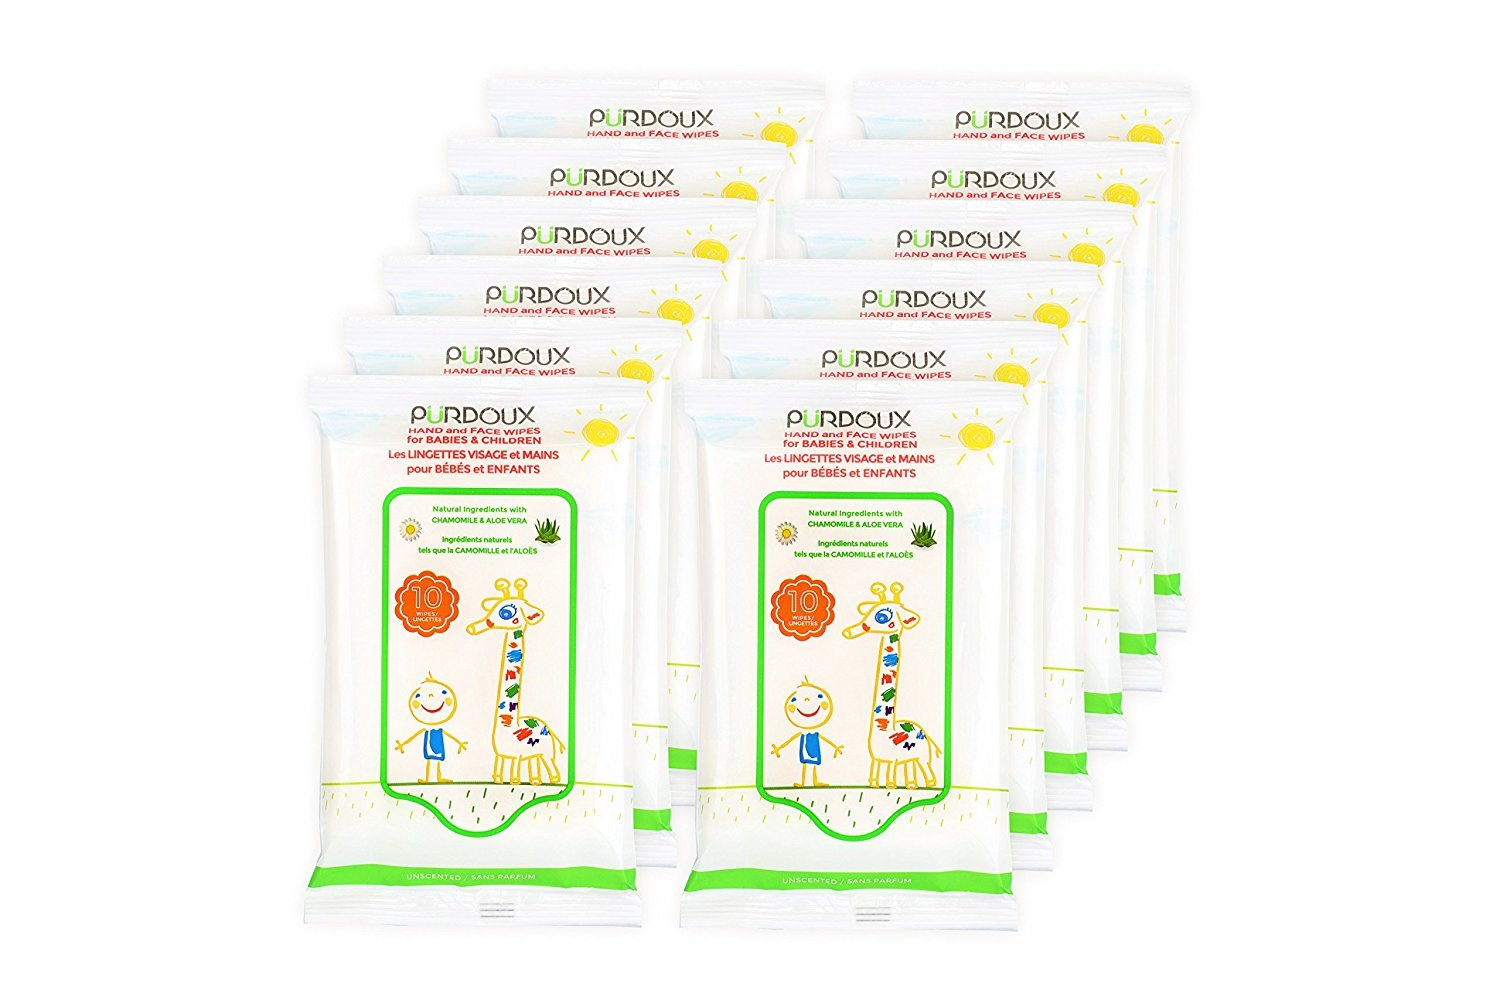 PÜRDOUX 100% Cotton Wipes for Babies and Children with Aloe Vera and Chamomile (Box of total 120 wet wipes in 12 resealable sachets, 10 wipes per sachet)